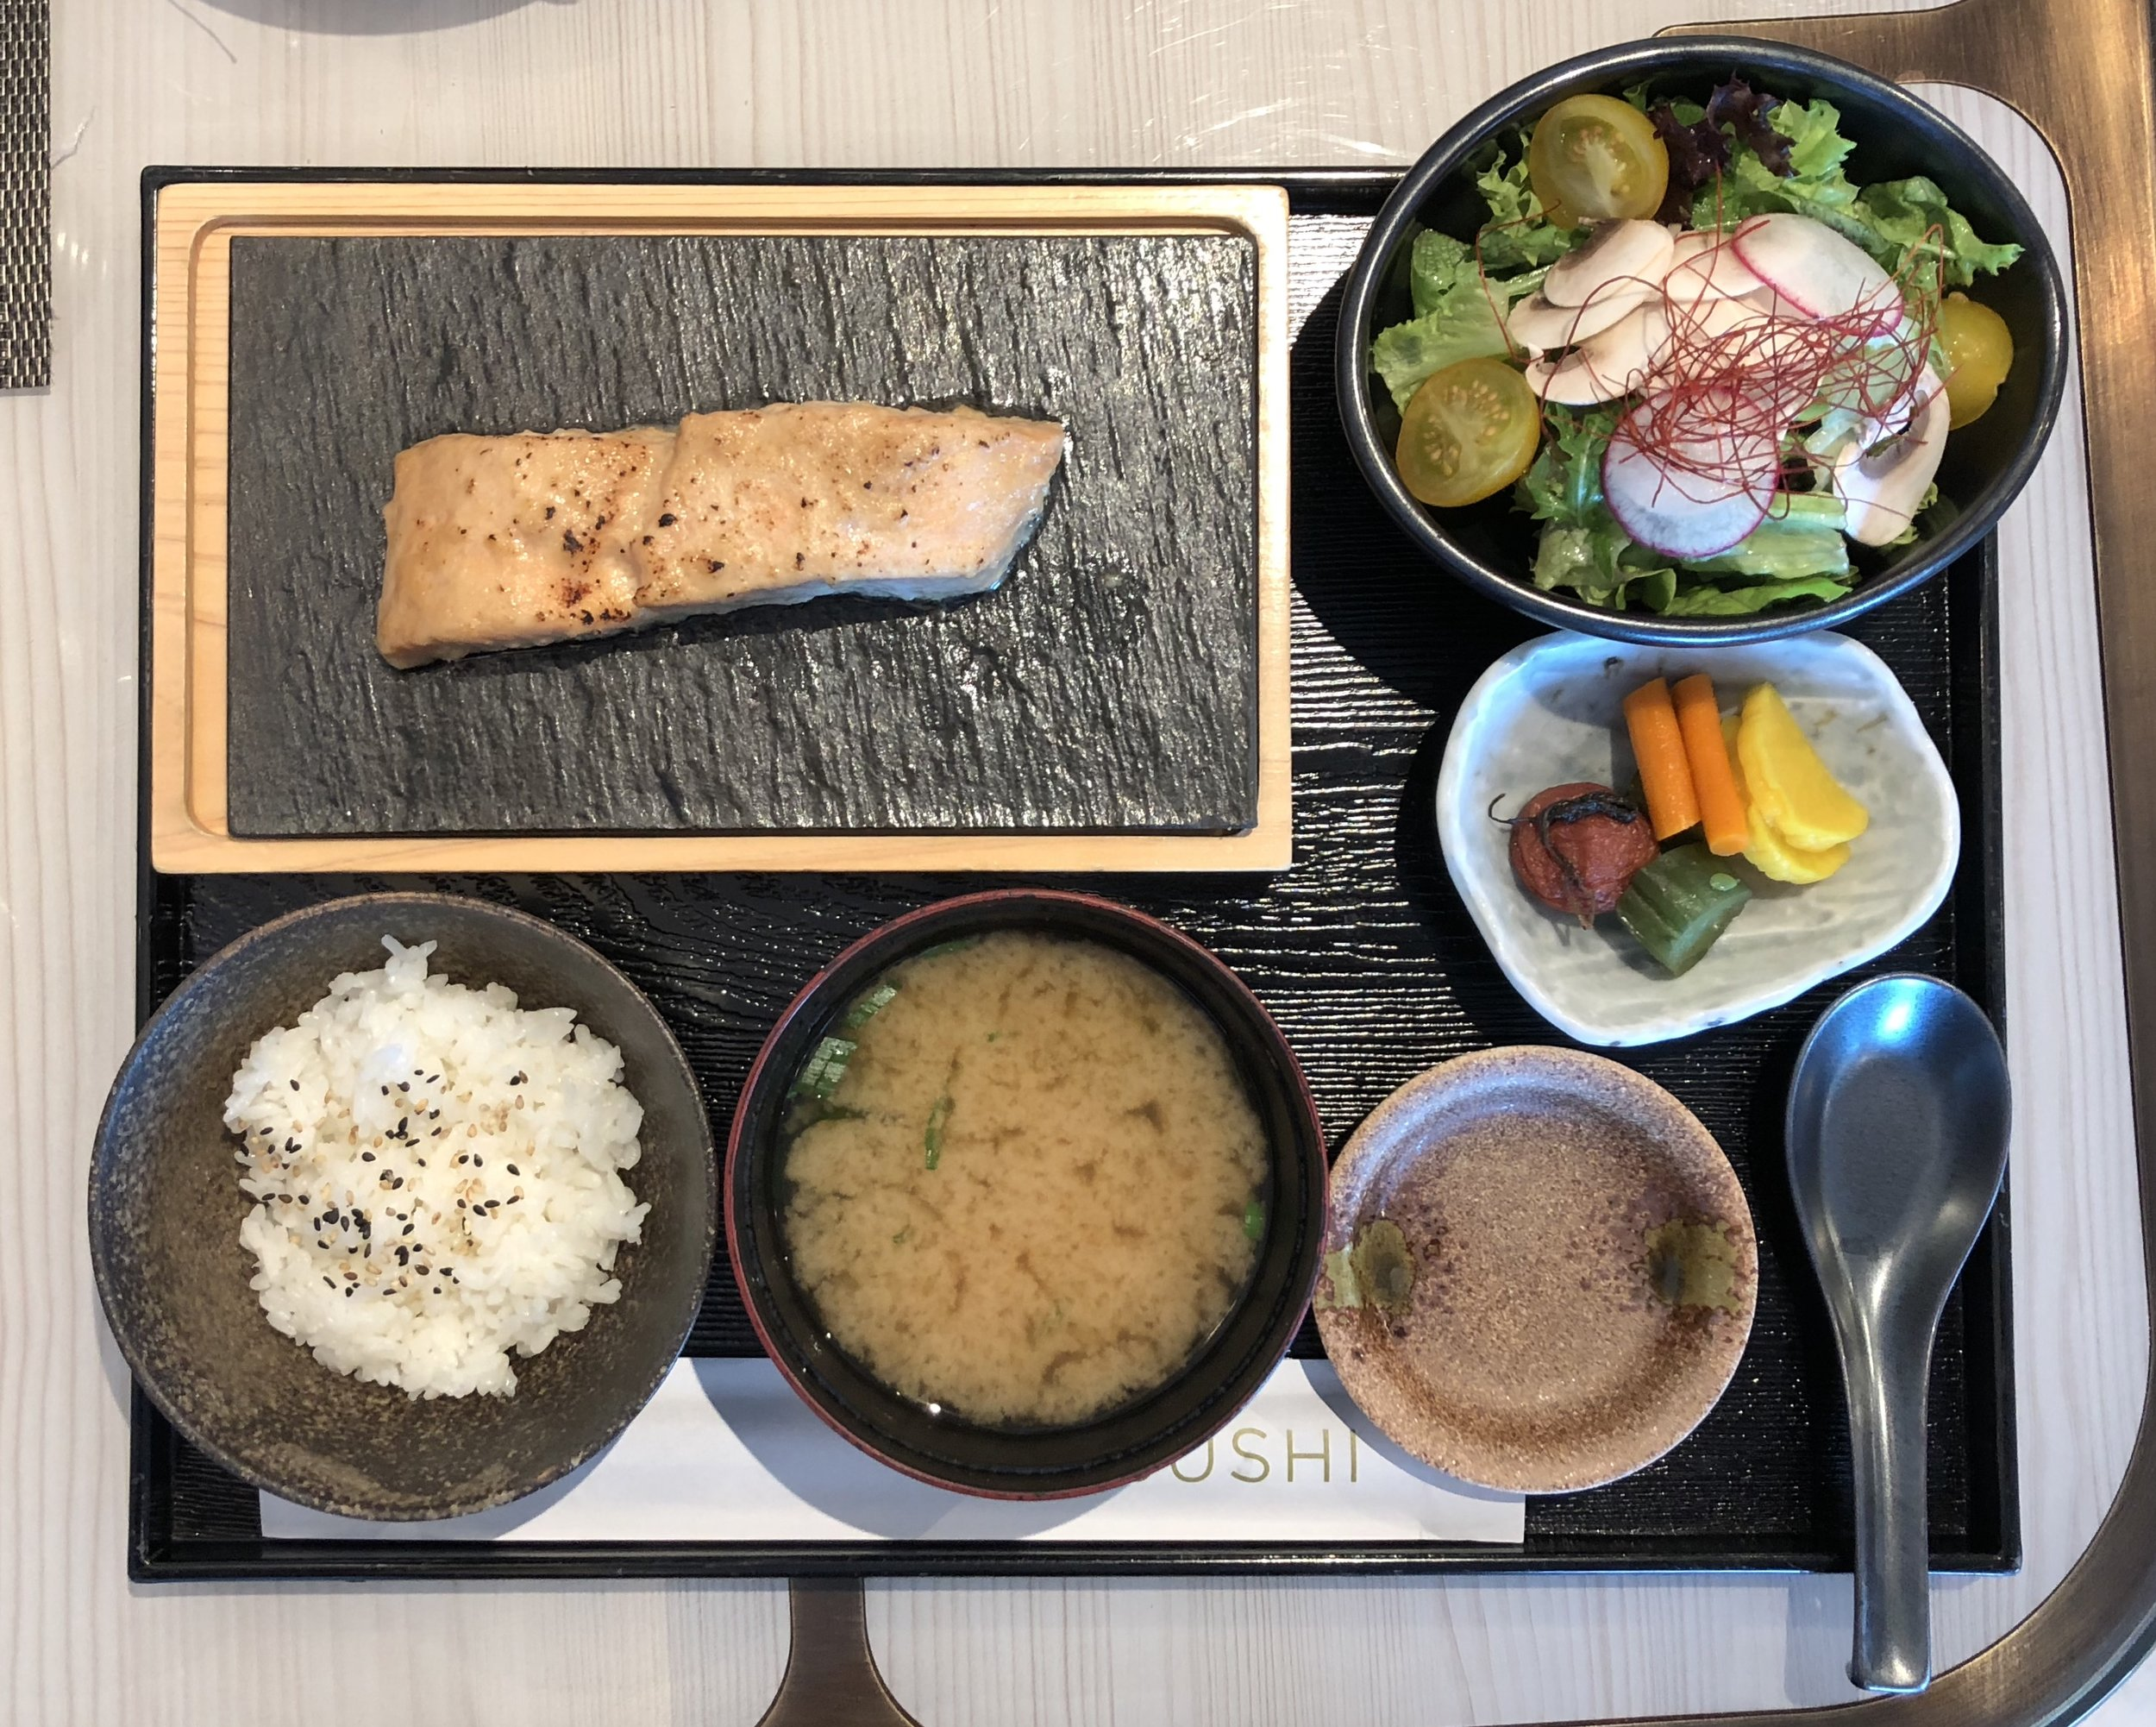 The salmon Bento box served at lunchtimes in the Sushi restaurant.